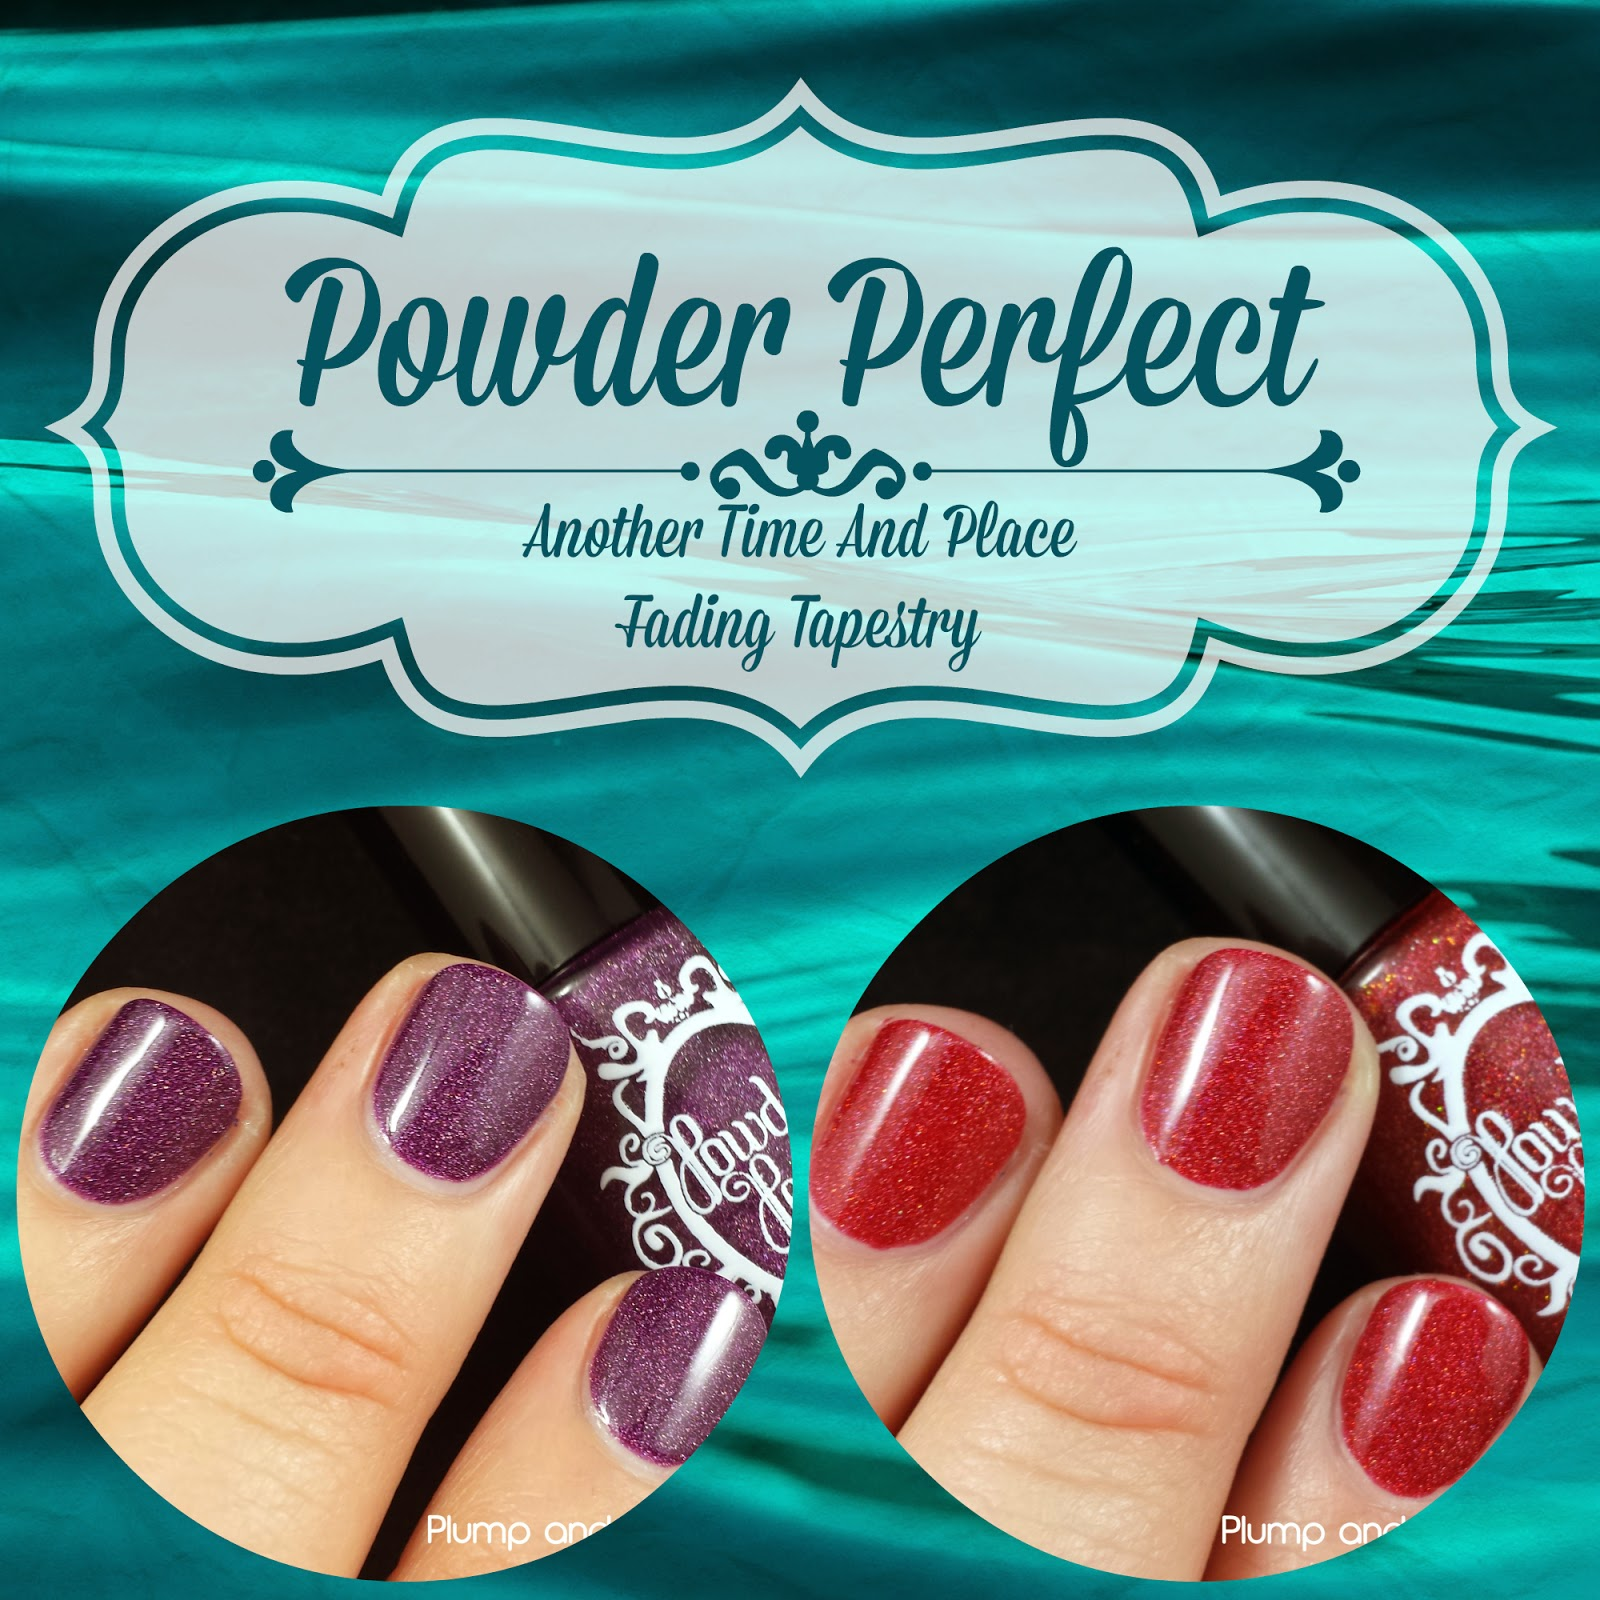 Powder Perfect - Another Time And Place & Fading Tapestry